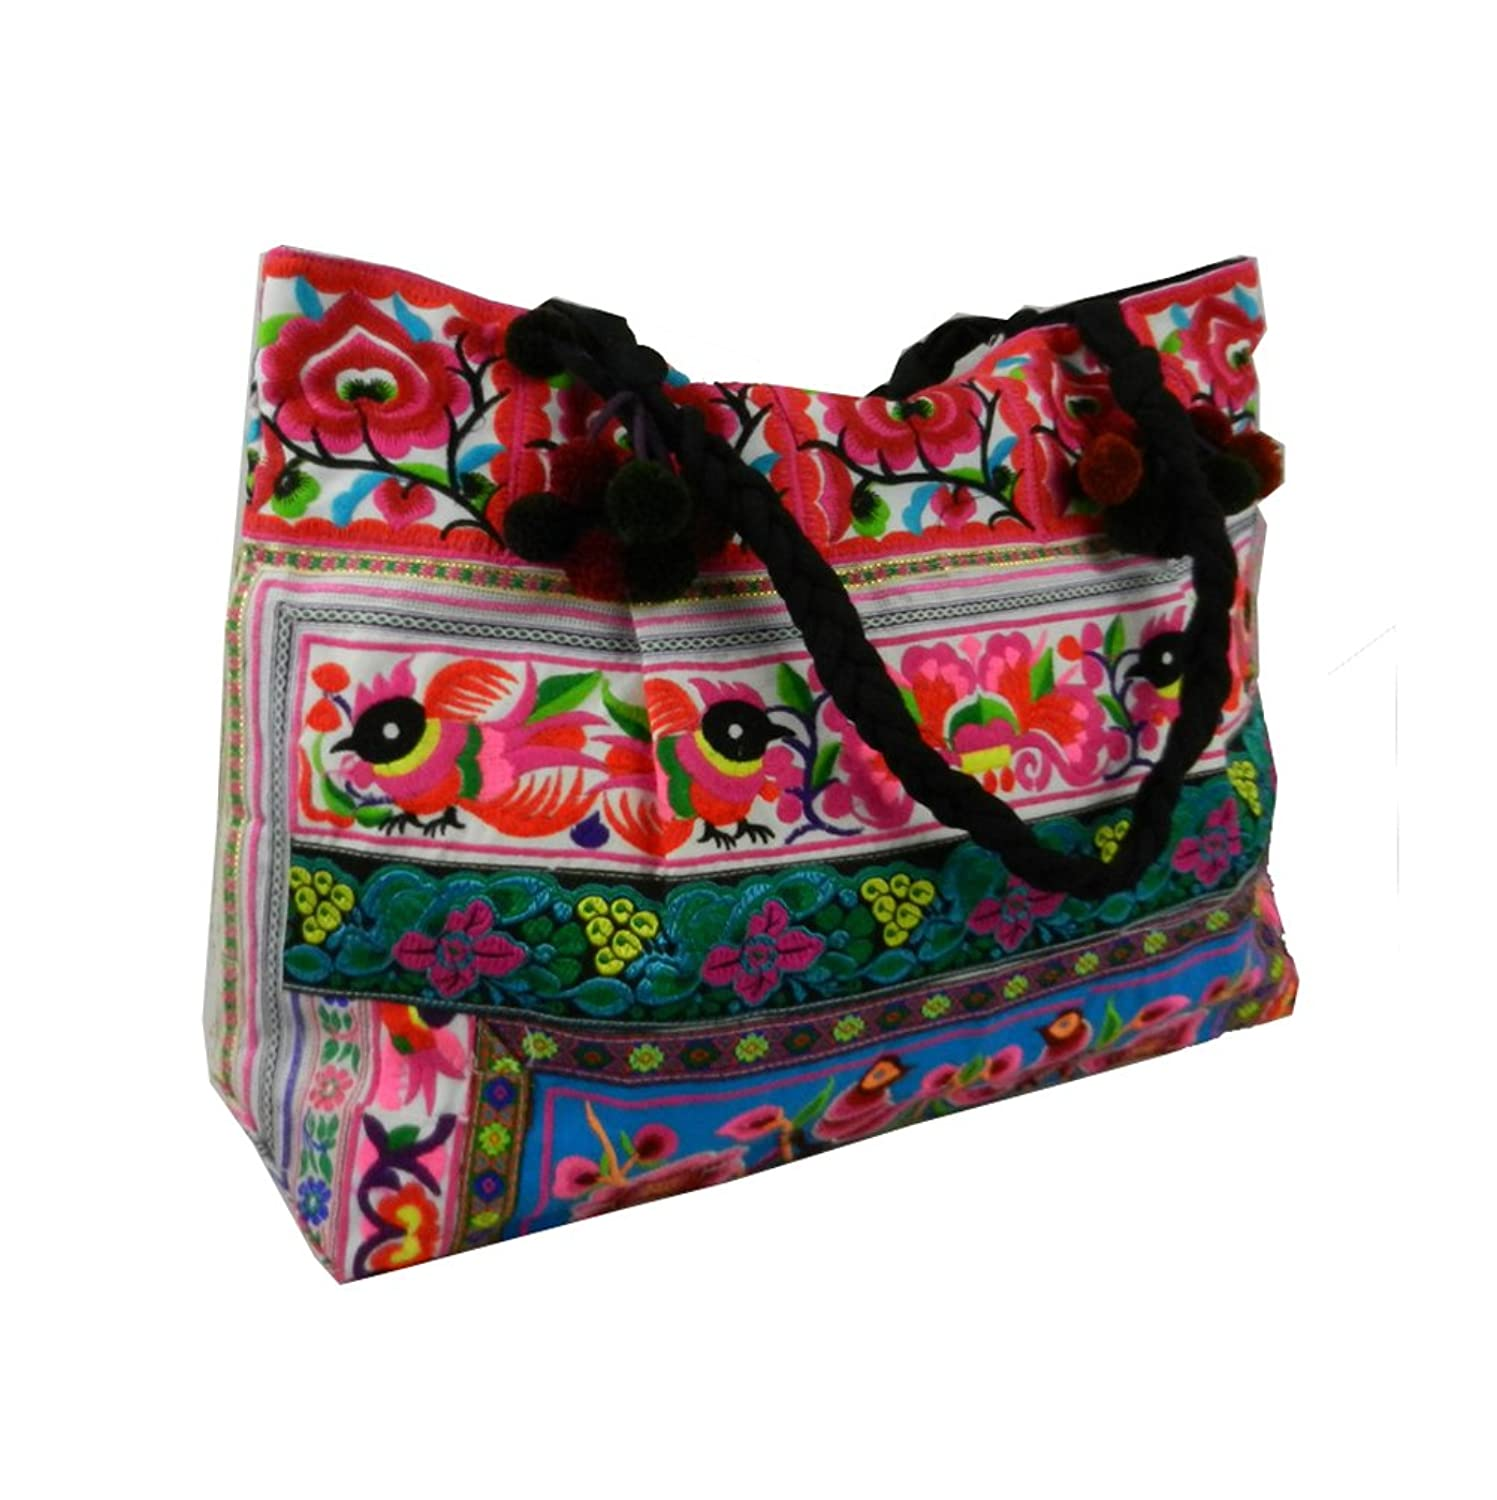 BTP! Hmong Shoulder Bag Hilltribe Large Tote Ethnic Purse Birds Embroidered Fabric Pink Turquoise HMT1